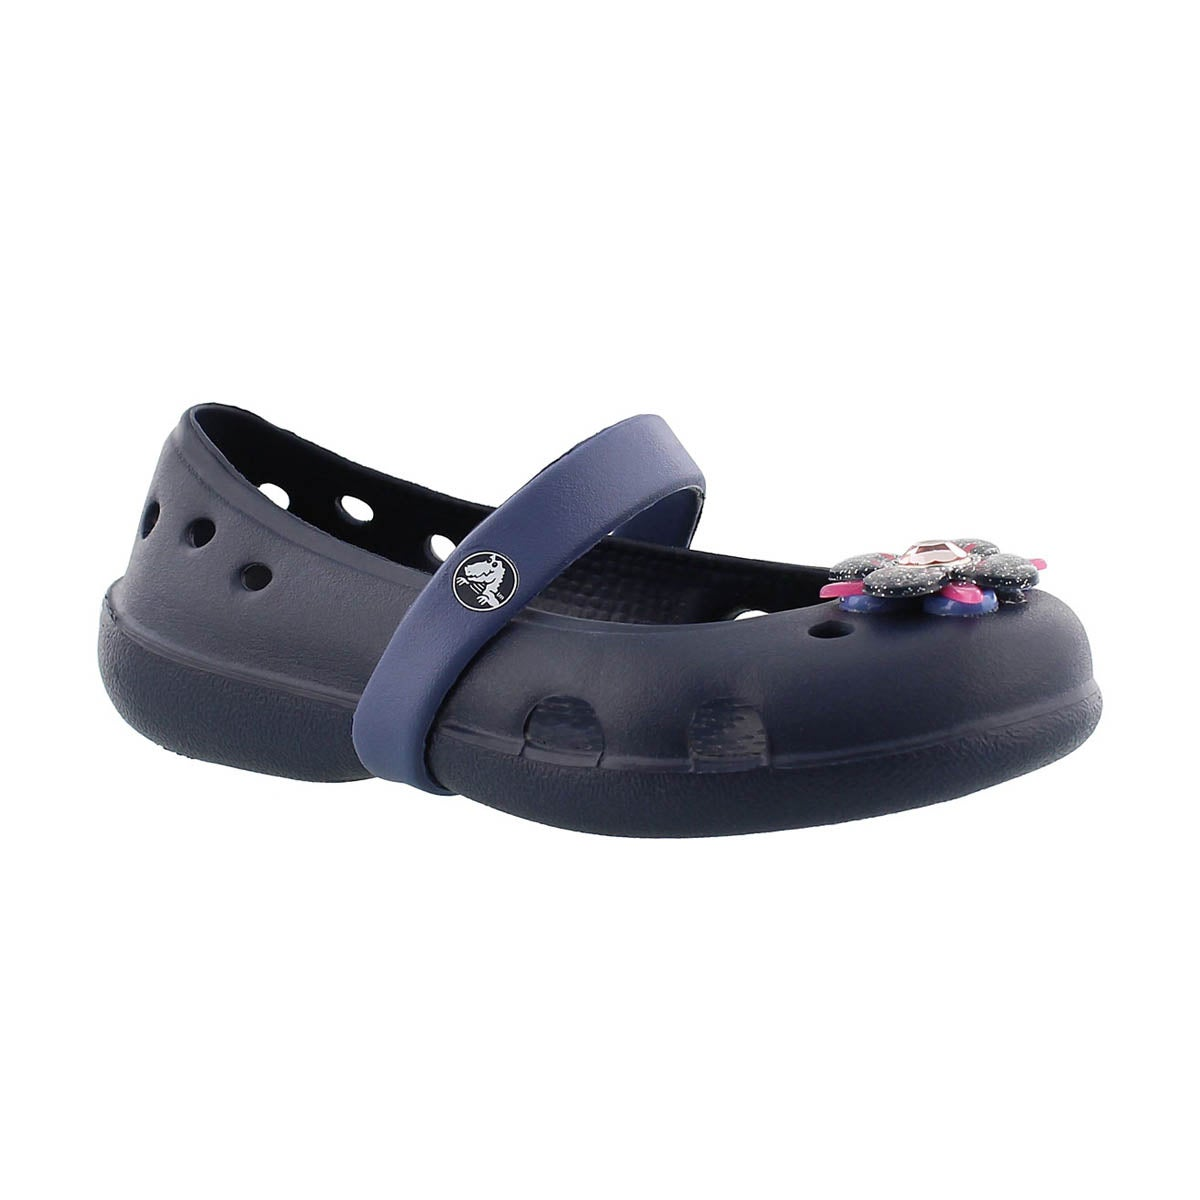 Girls' KEELEY SPRINGTIME navy Mary Jane flats